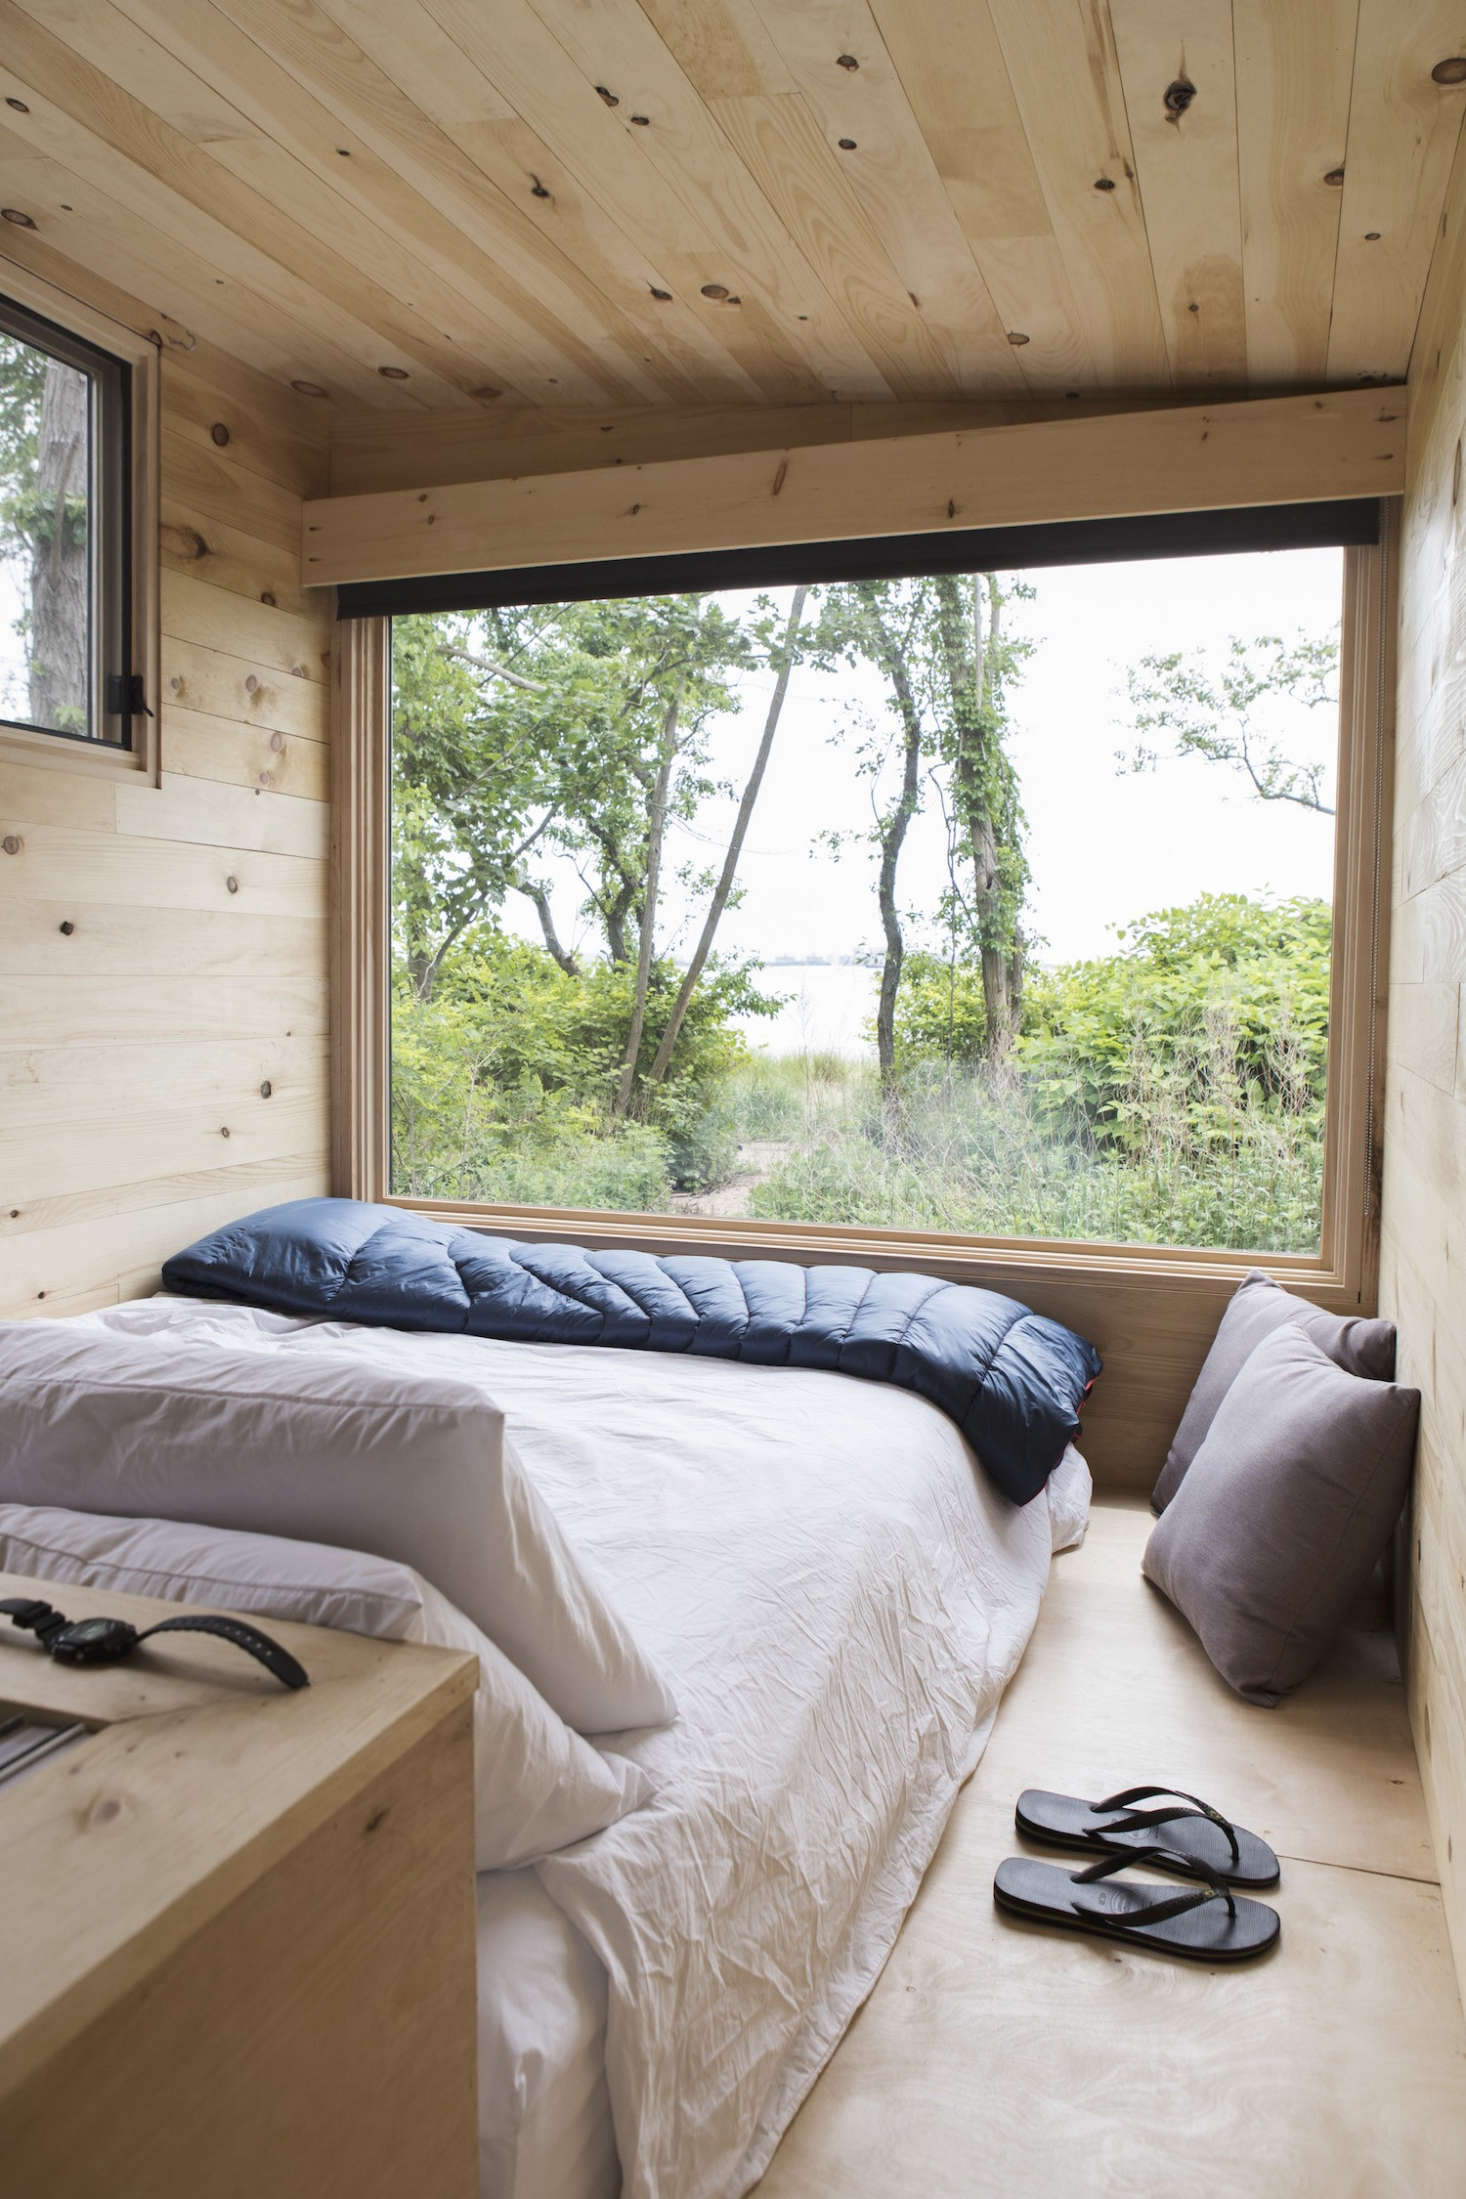 A queen bed in a NYC shoreline pop-up cabin. Photograph by Pine & Palm Journal.